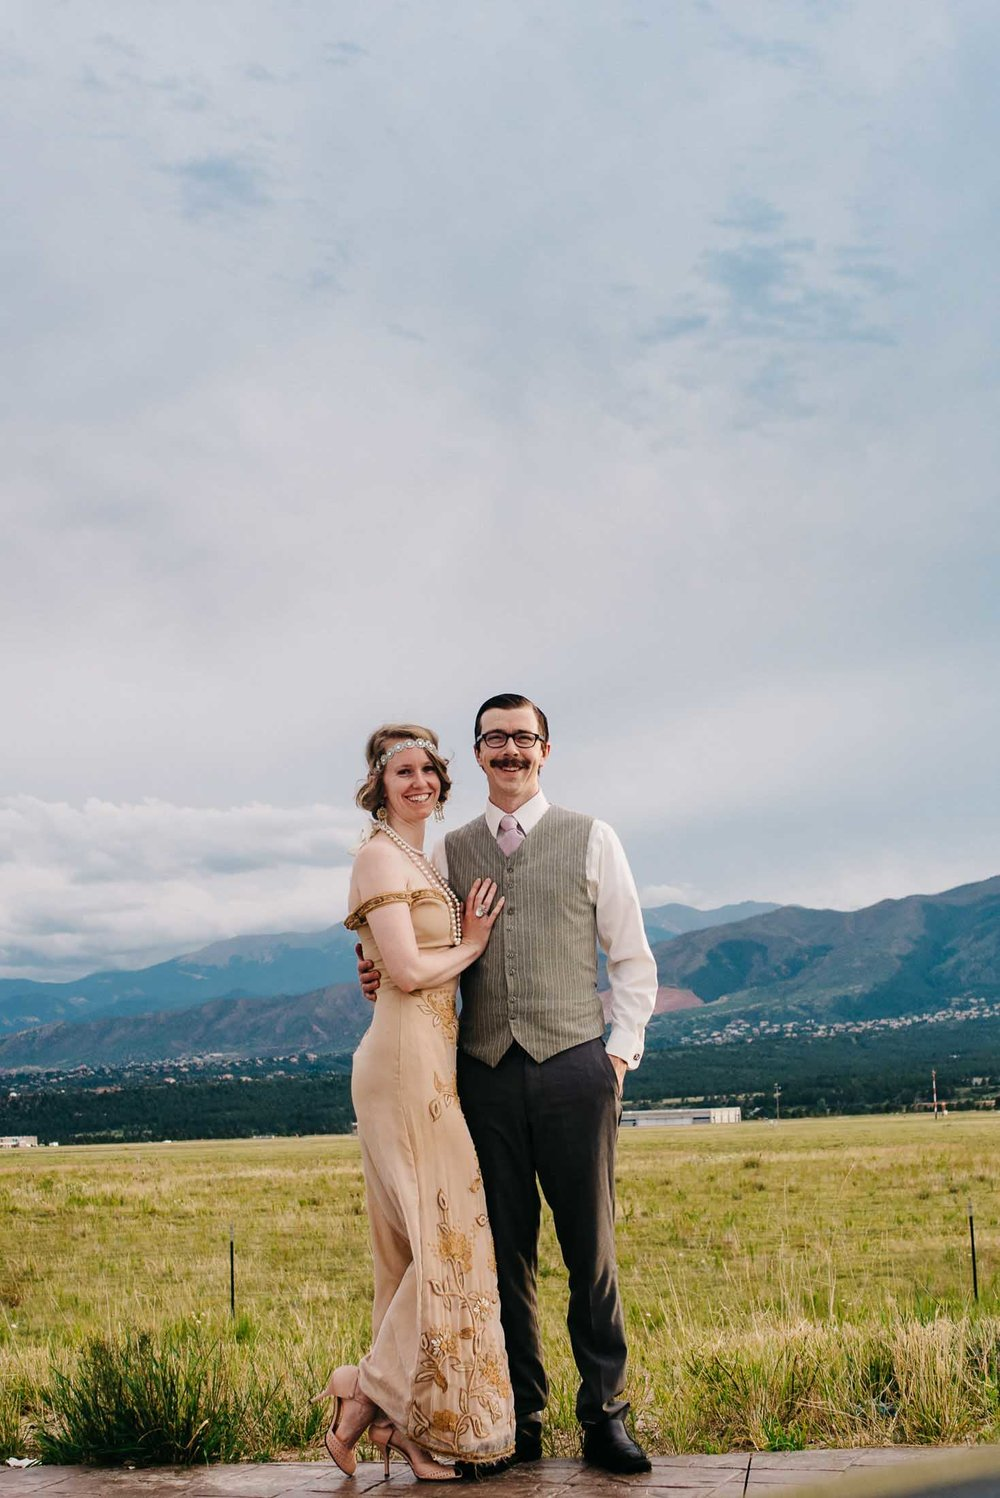 20-emmy-searching-for-the-light-photography-colorado-photographer-elopement-photographer-dance-photographer-couple-photographer_Summer-Kirk_Murder_Mystery-July-2017-069.jpg